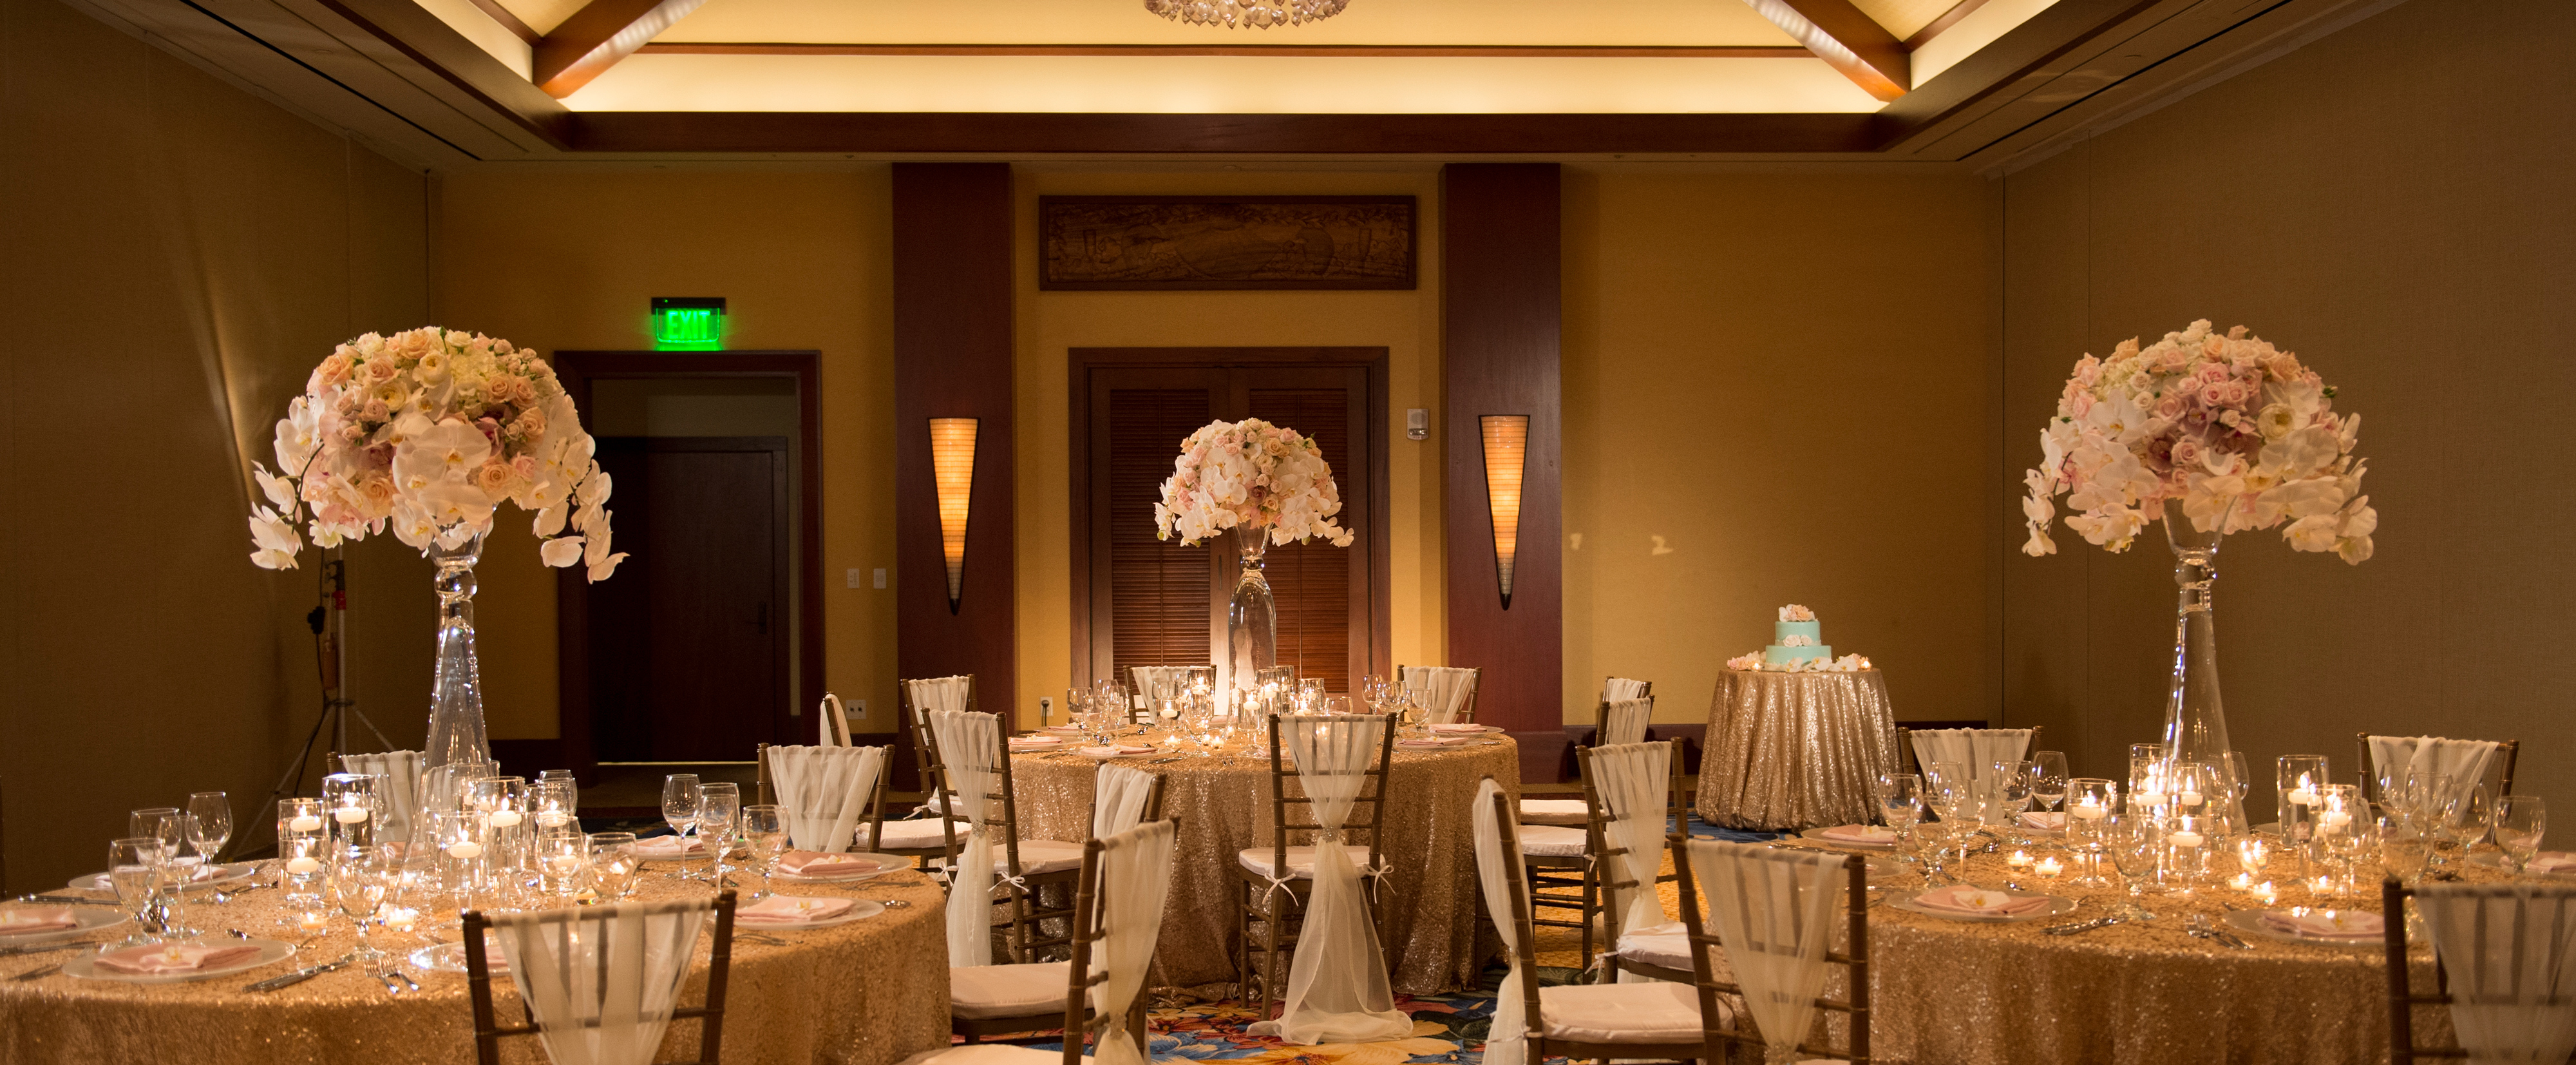 Three tables with tall floral centerpieces, floating candles and glass stemware in a banquet room